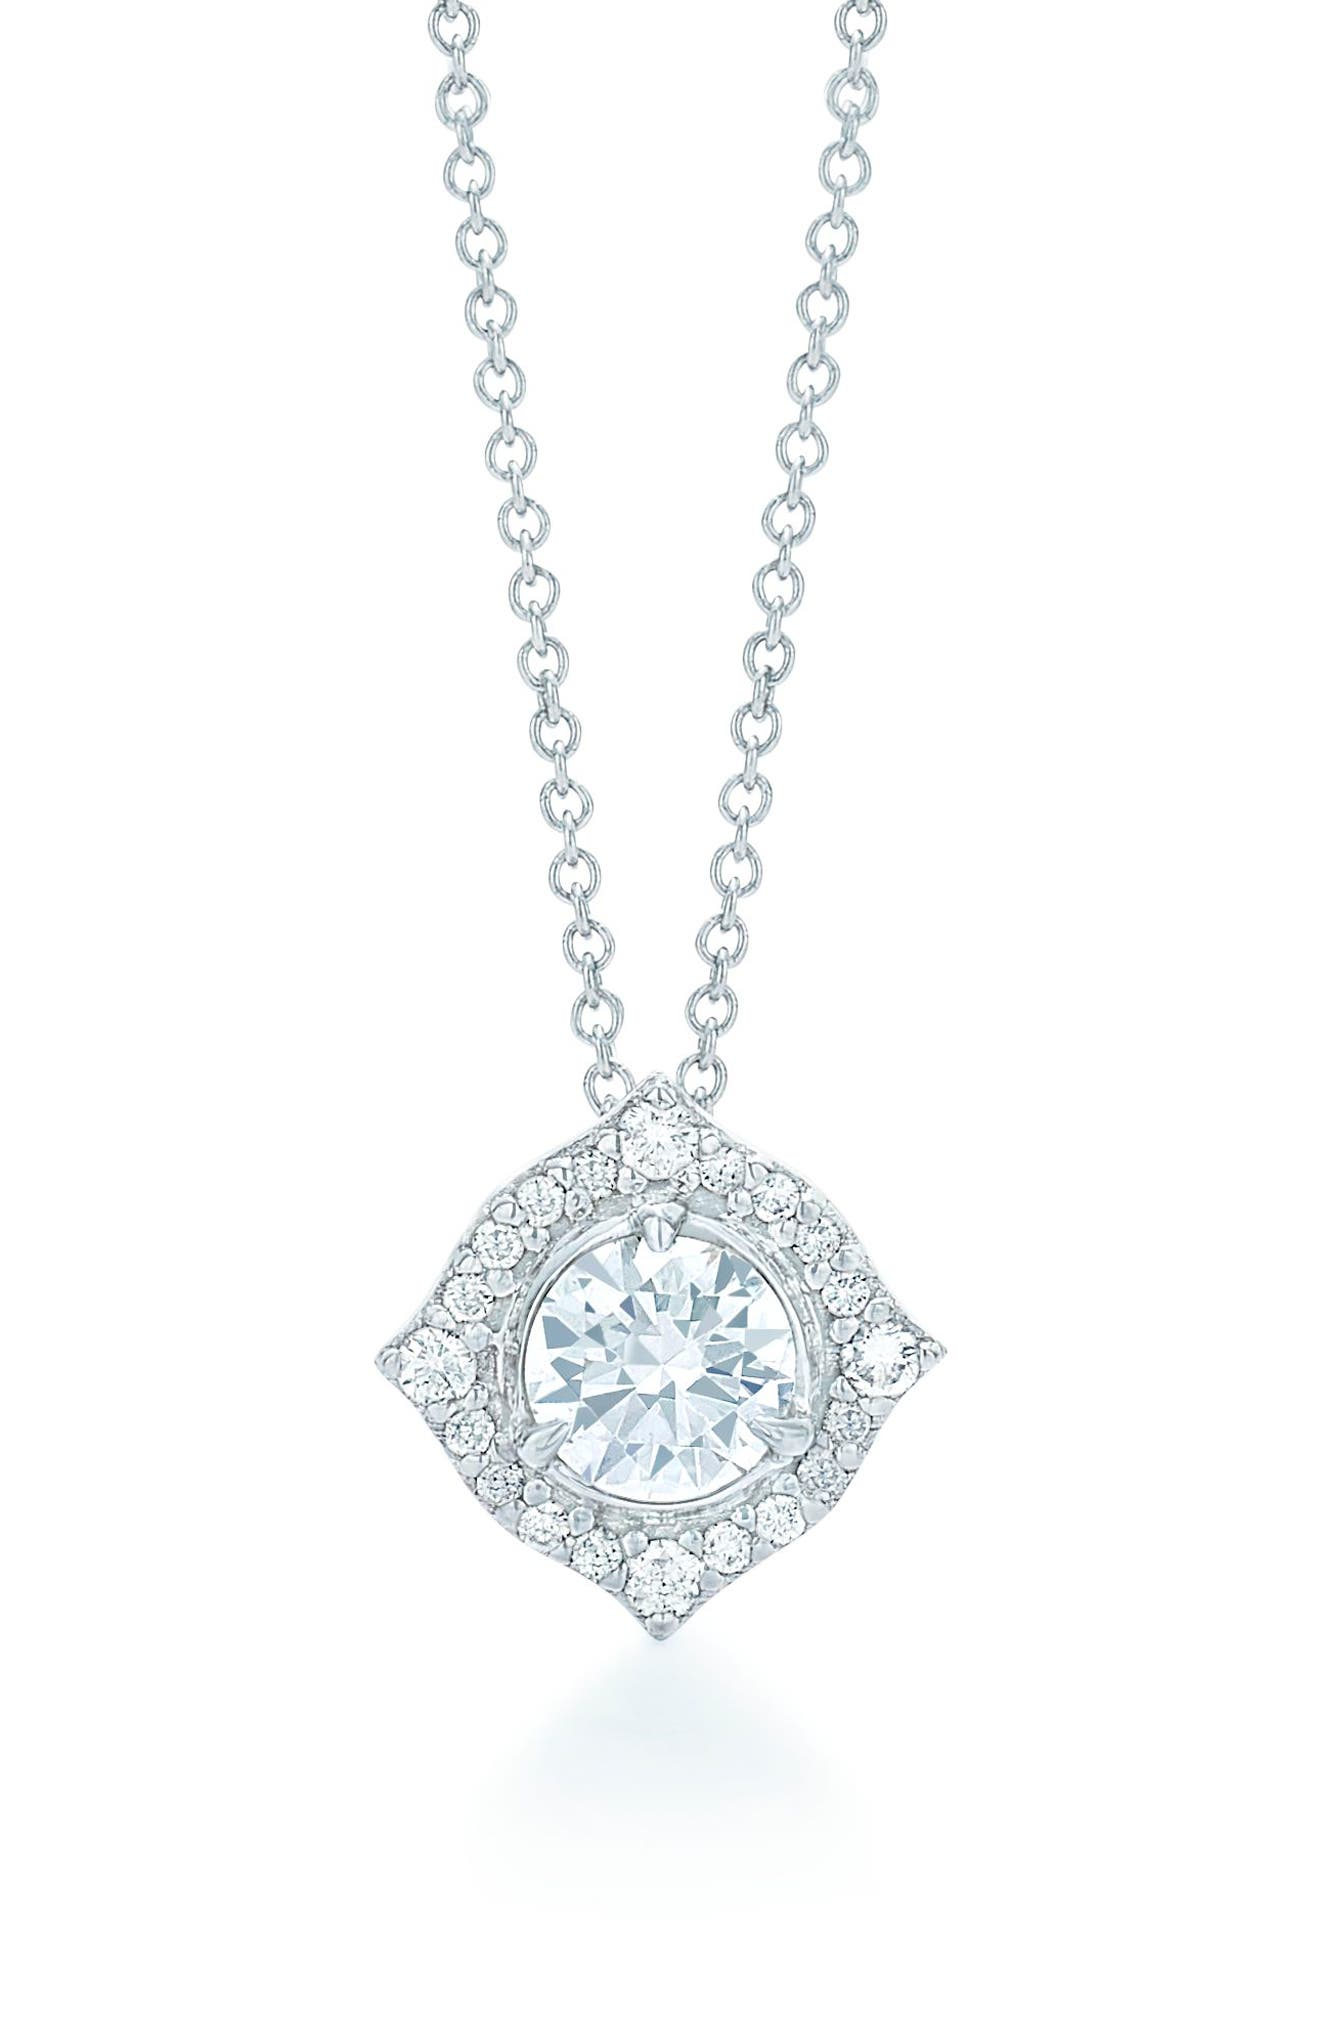 Halo Diamond Pendant Necklace,                             Main thumbnail 1, color,                             White Gold